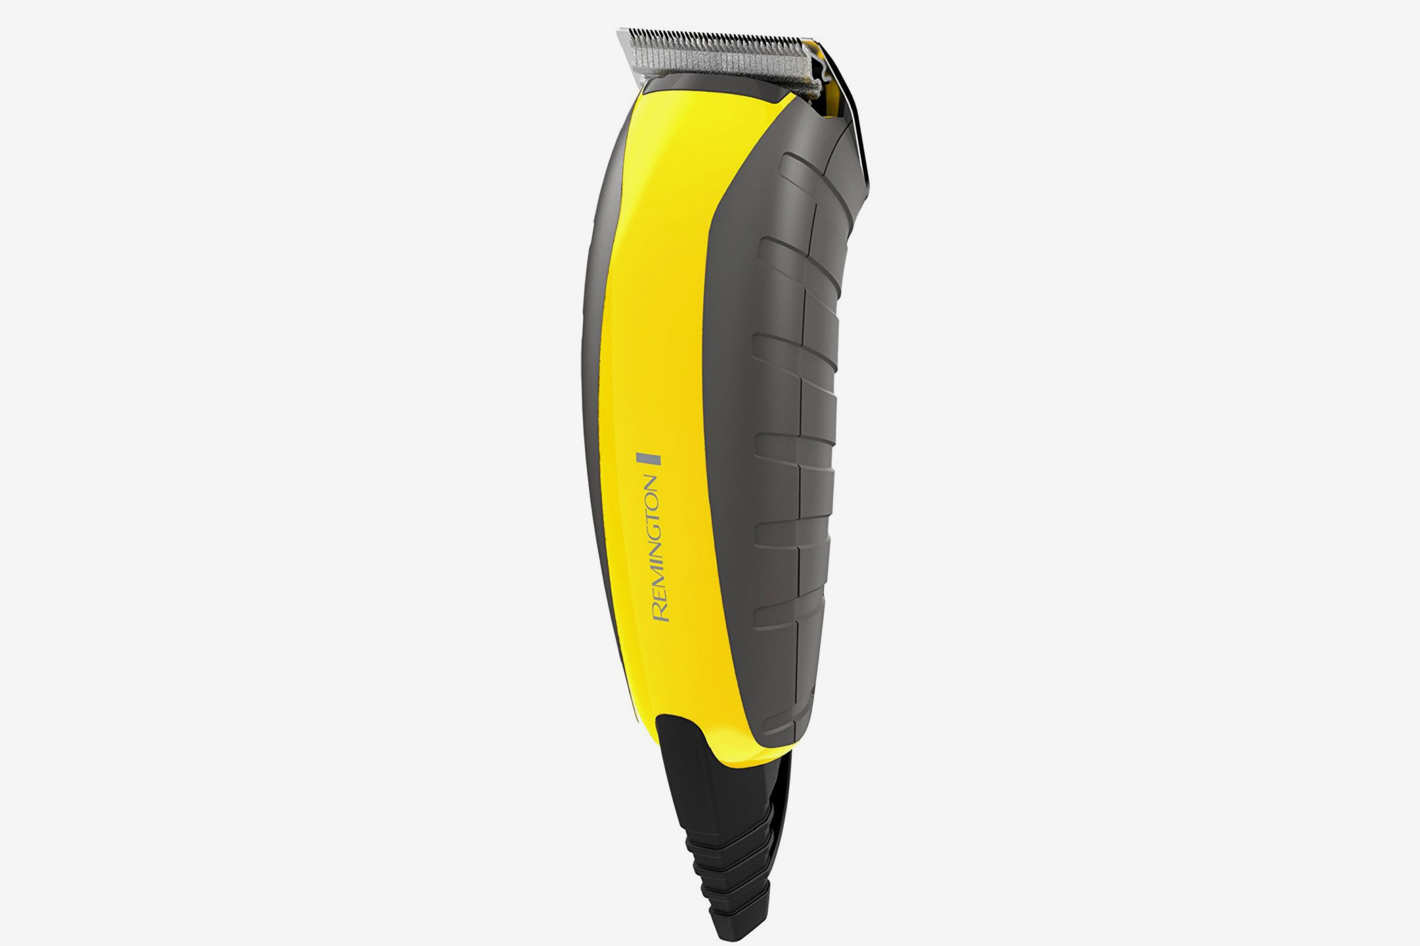 remington virtually indestructible beard trimmer yellow rubber